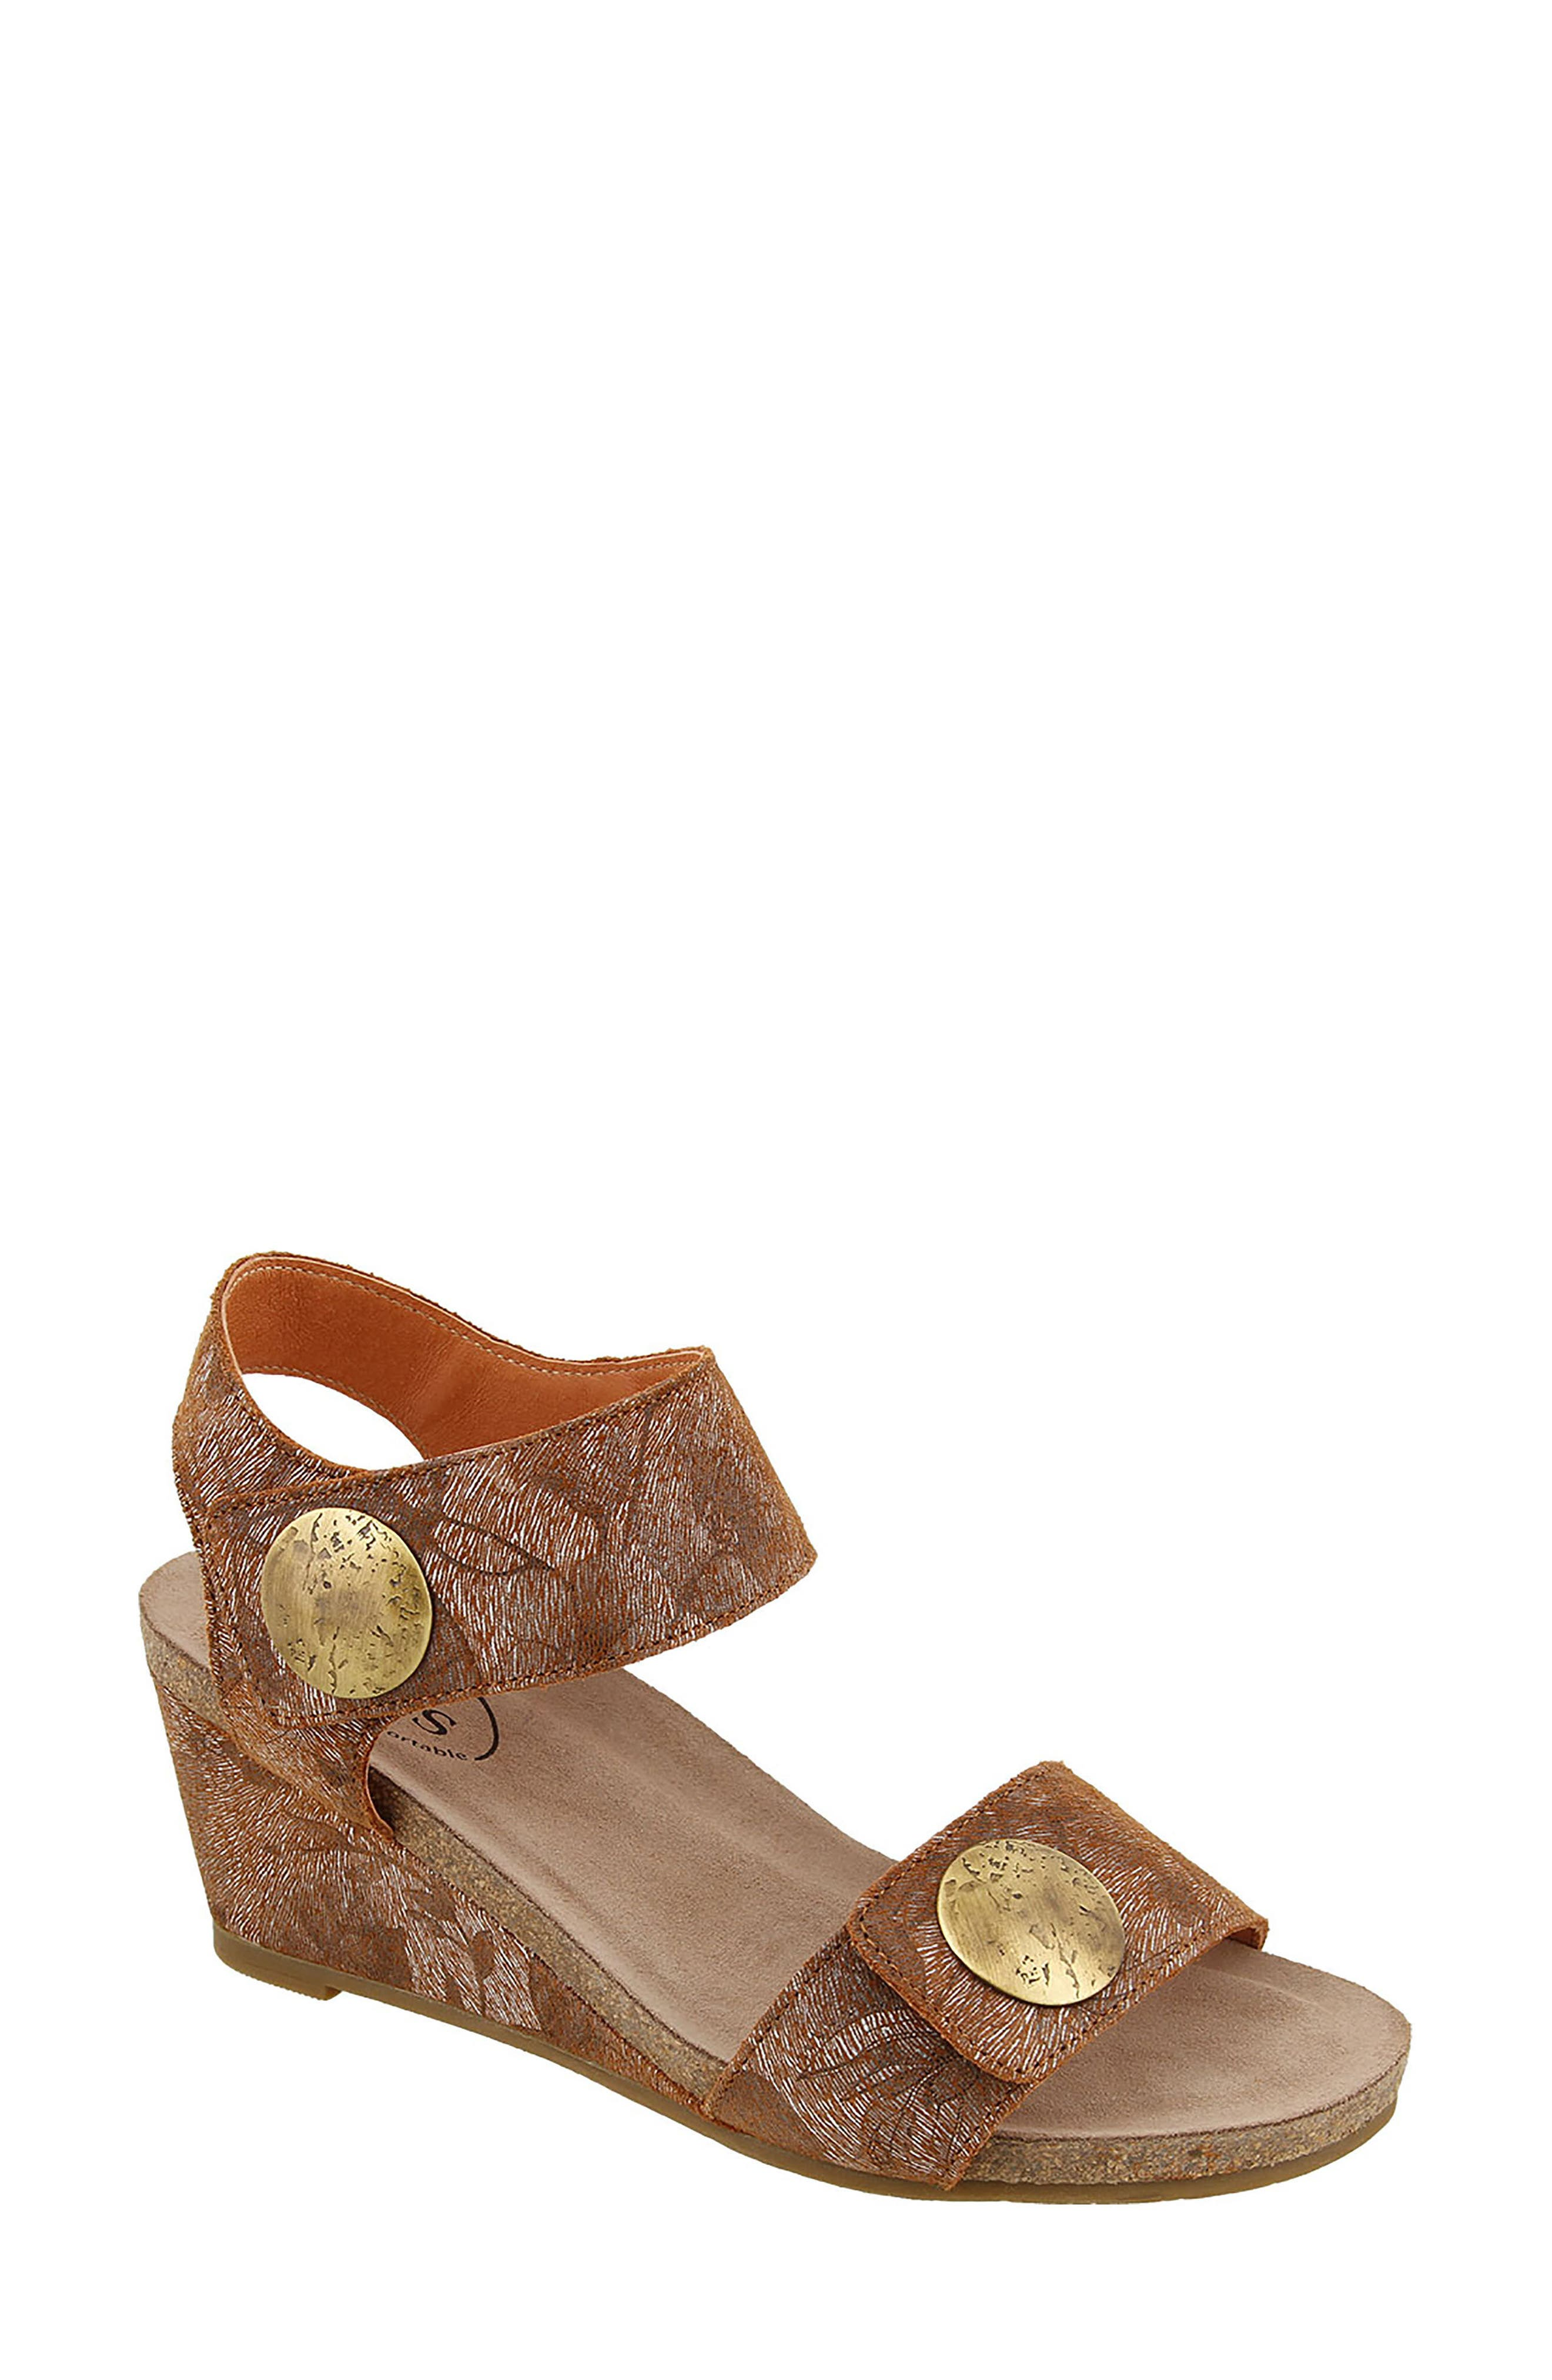 Alternate Image 1 Selected - Taos 'Carousel 2' Wedge Sandal (Women)